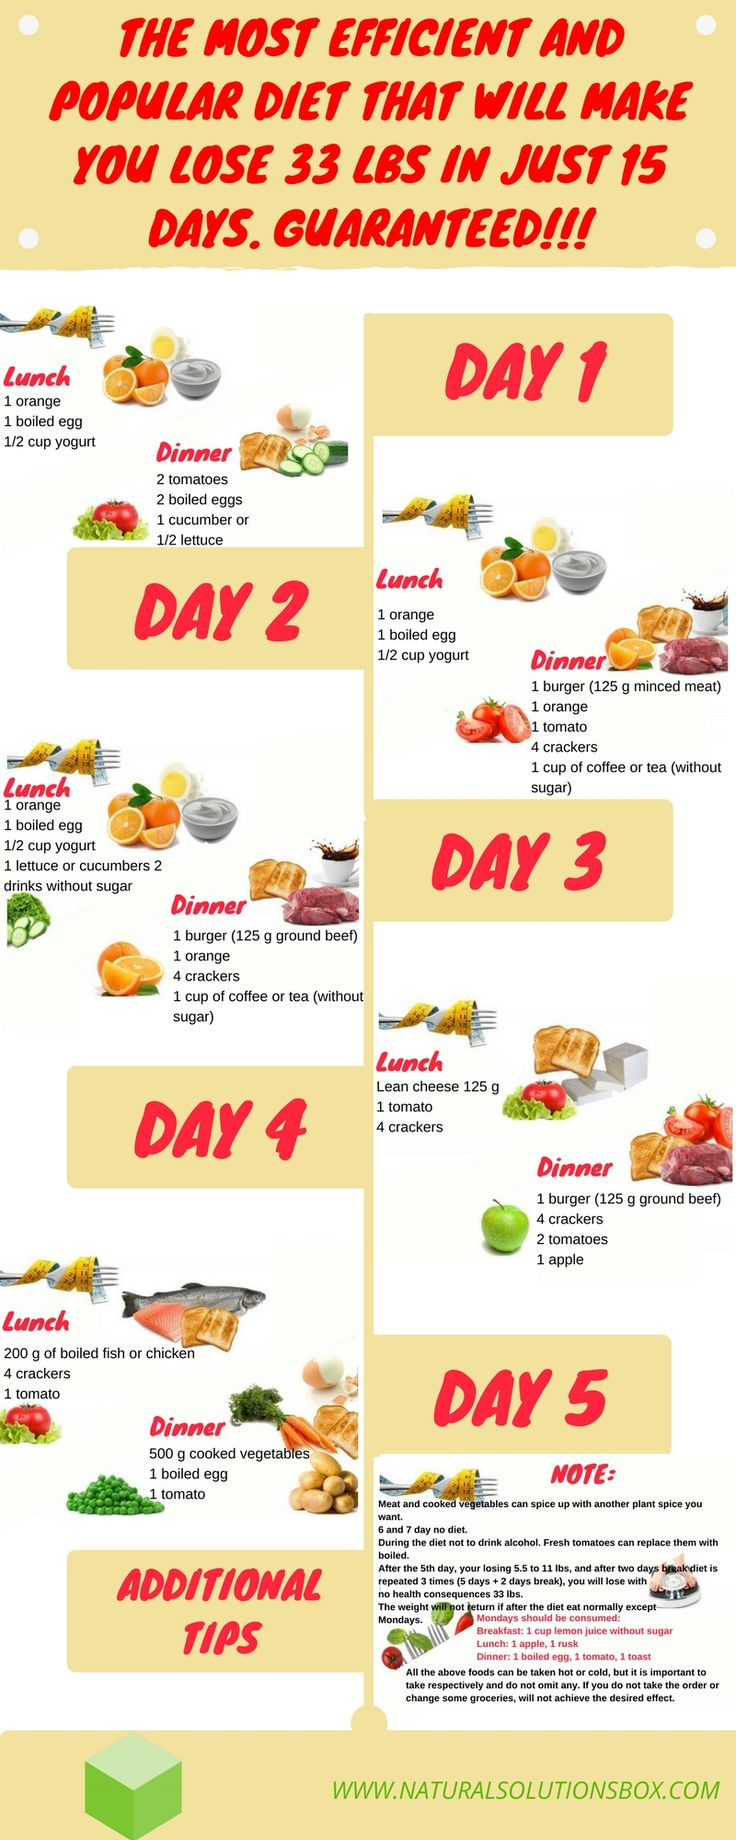 Breakfast is the same throughout the 15 days, and consists of 1 fruit (orange, pear, peach, yellow melon, watermelon, exclude banana and grapes) crackers, a cup of coffee or tea without sugar.